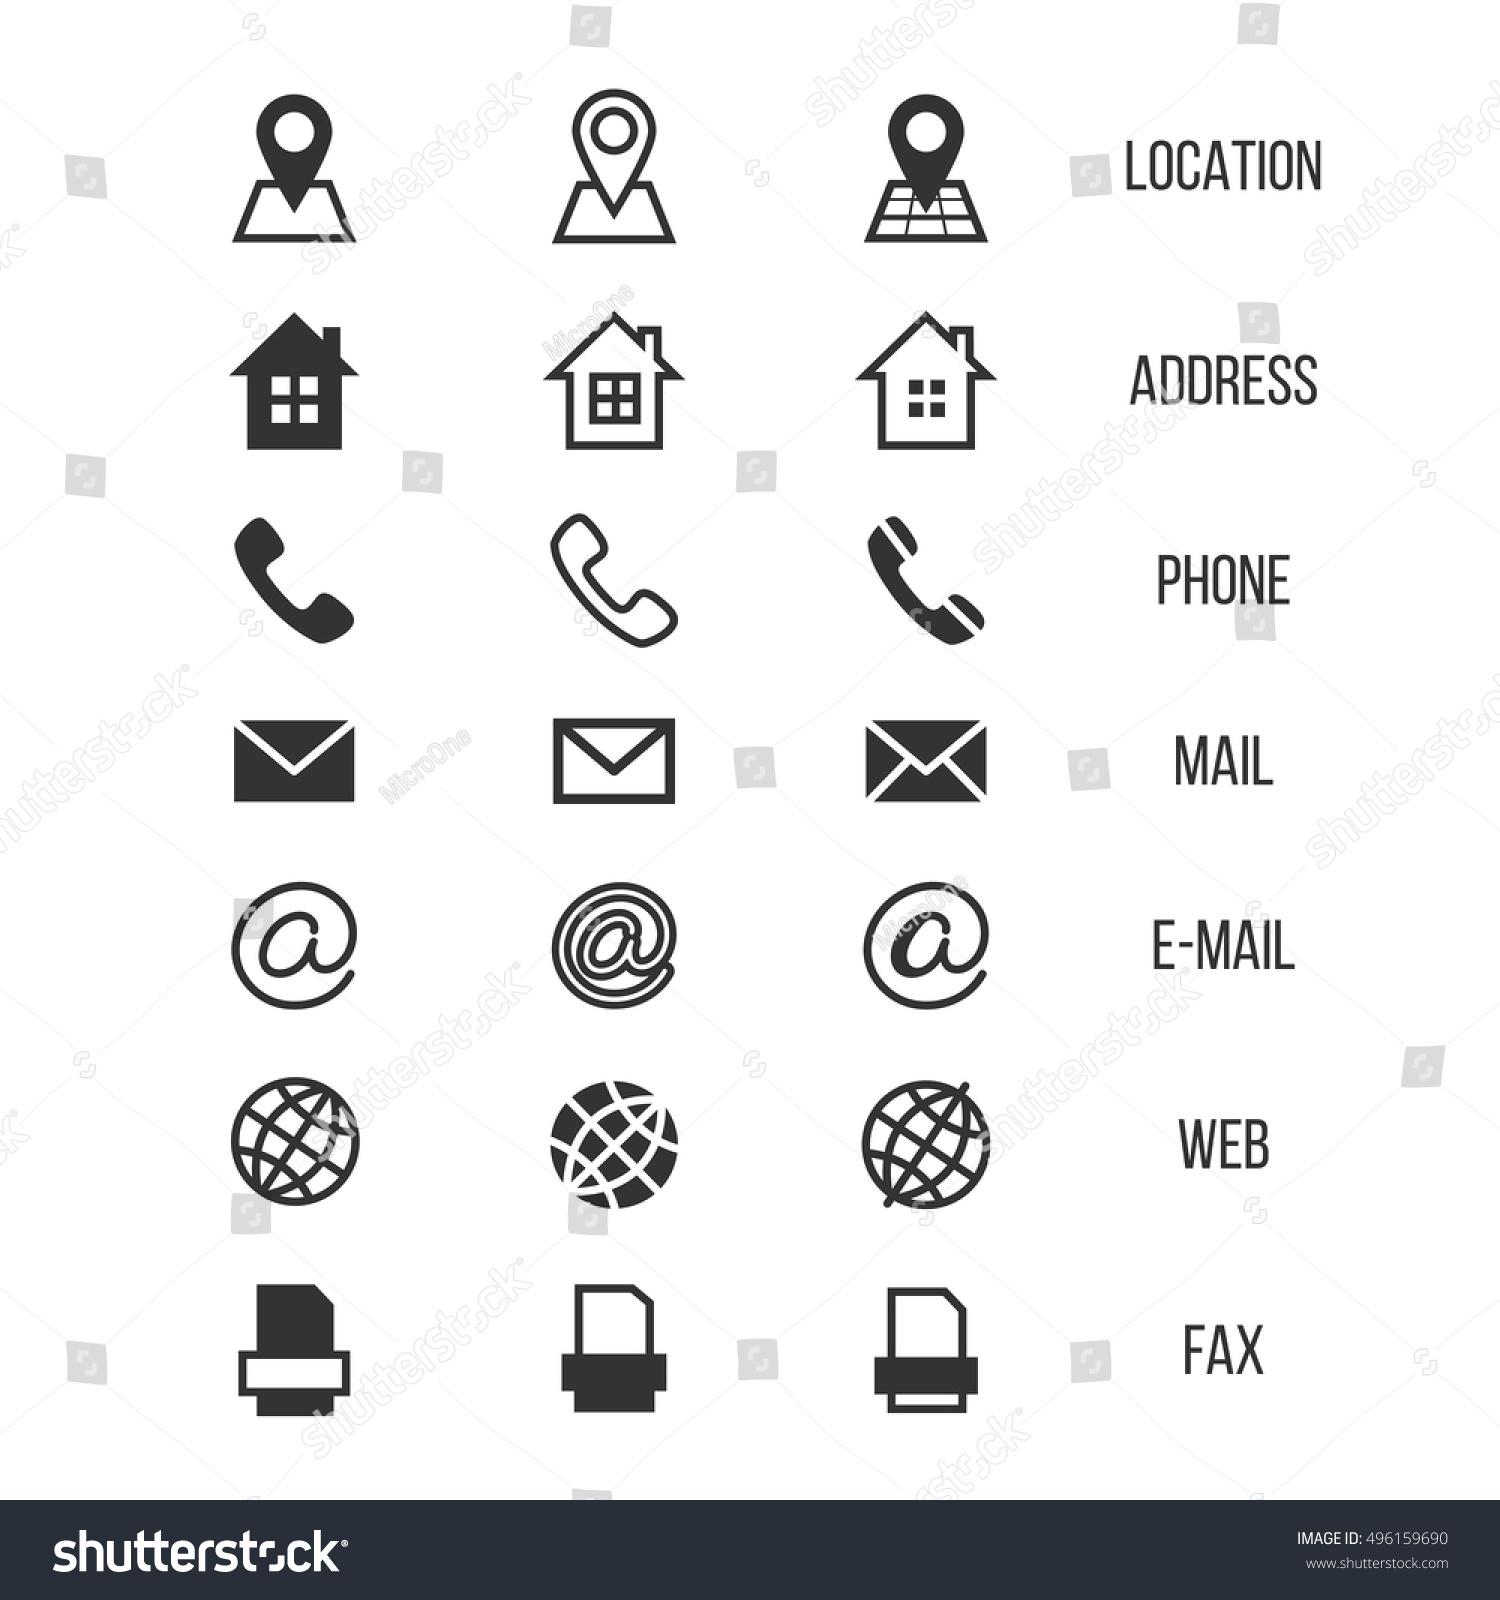 Business Card Vector Icons Home And Phone Address Telephone Fax Web